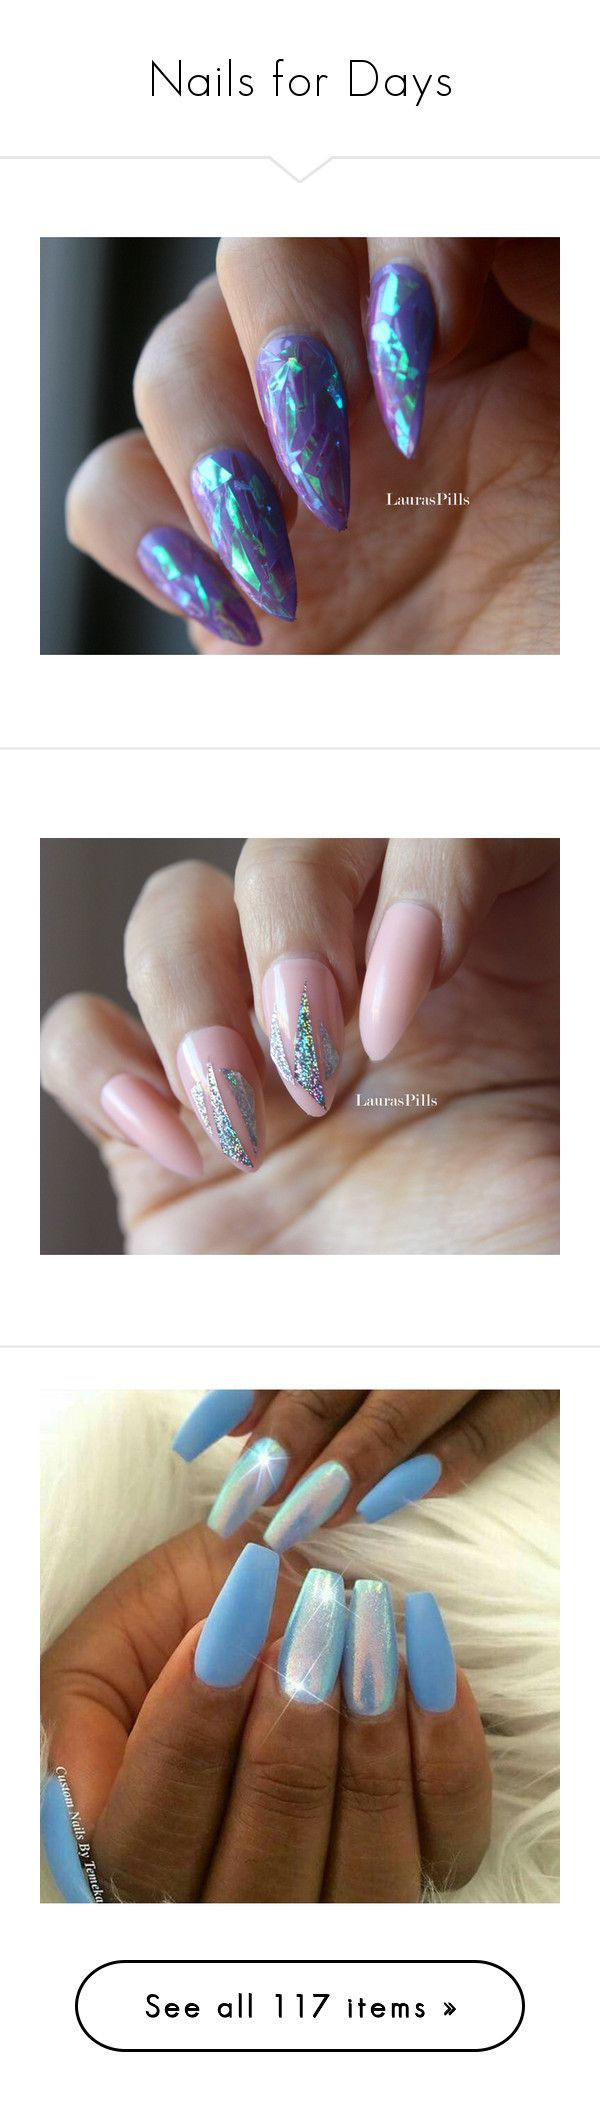 """""""Nails for Days"""" by shannoncleghorse ❤ liked on Polyvore featuring beauty products, nail care, nail treatments, nails, makeup, beauty, nail polish, gel nail color, gel nail varnish and gel nail care"""